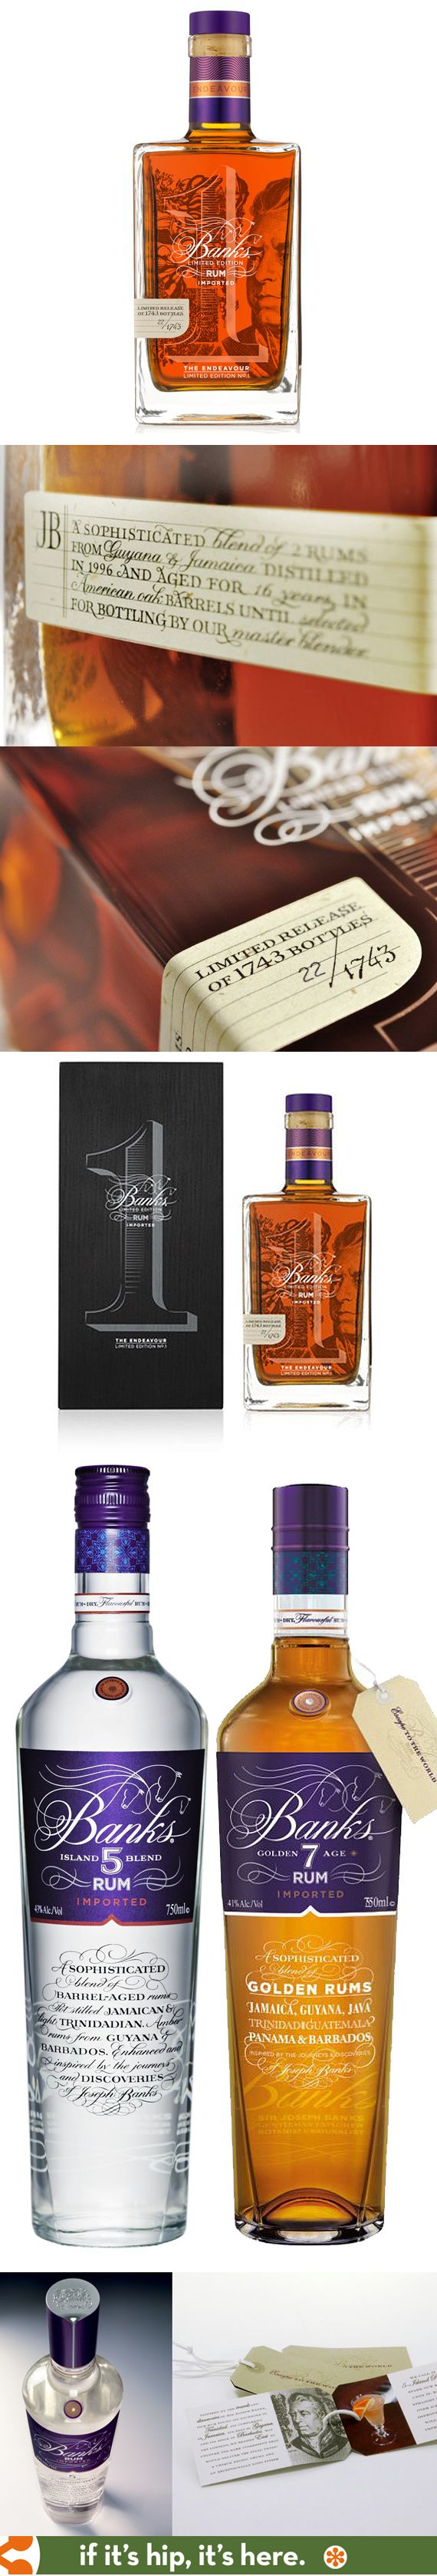 The beautiful bottles, hang tags and packaging for Banks' various rums. The limited edition Endeavor won a 2012 Pentagram packaging award.